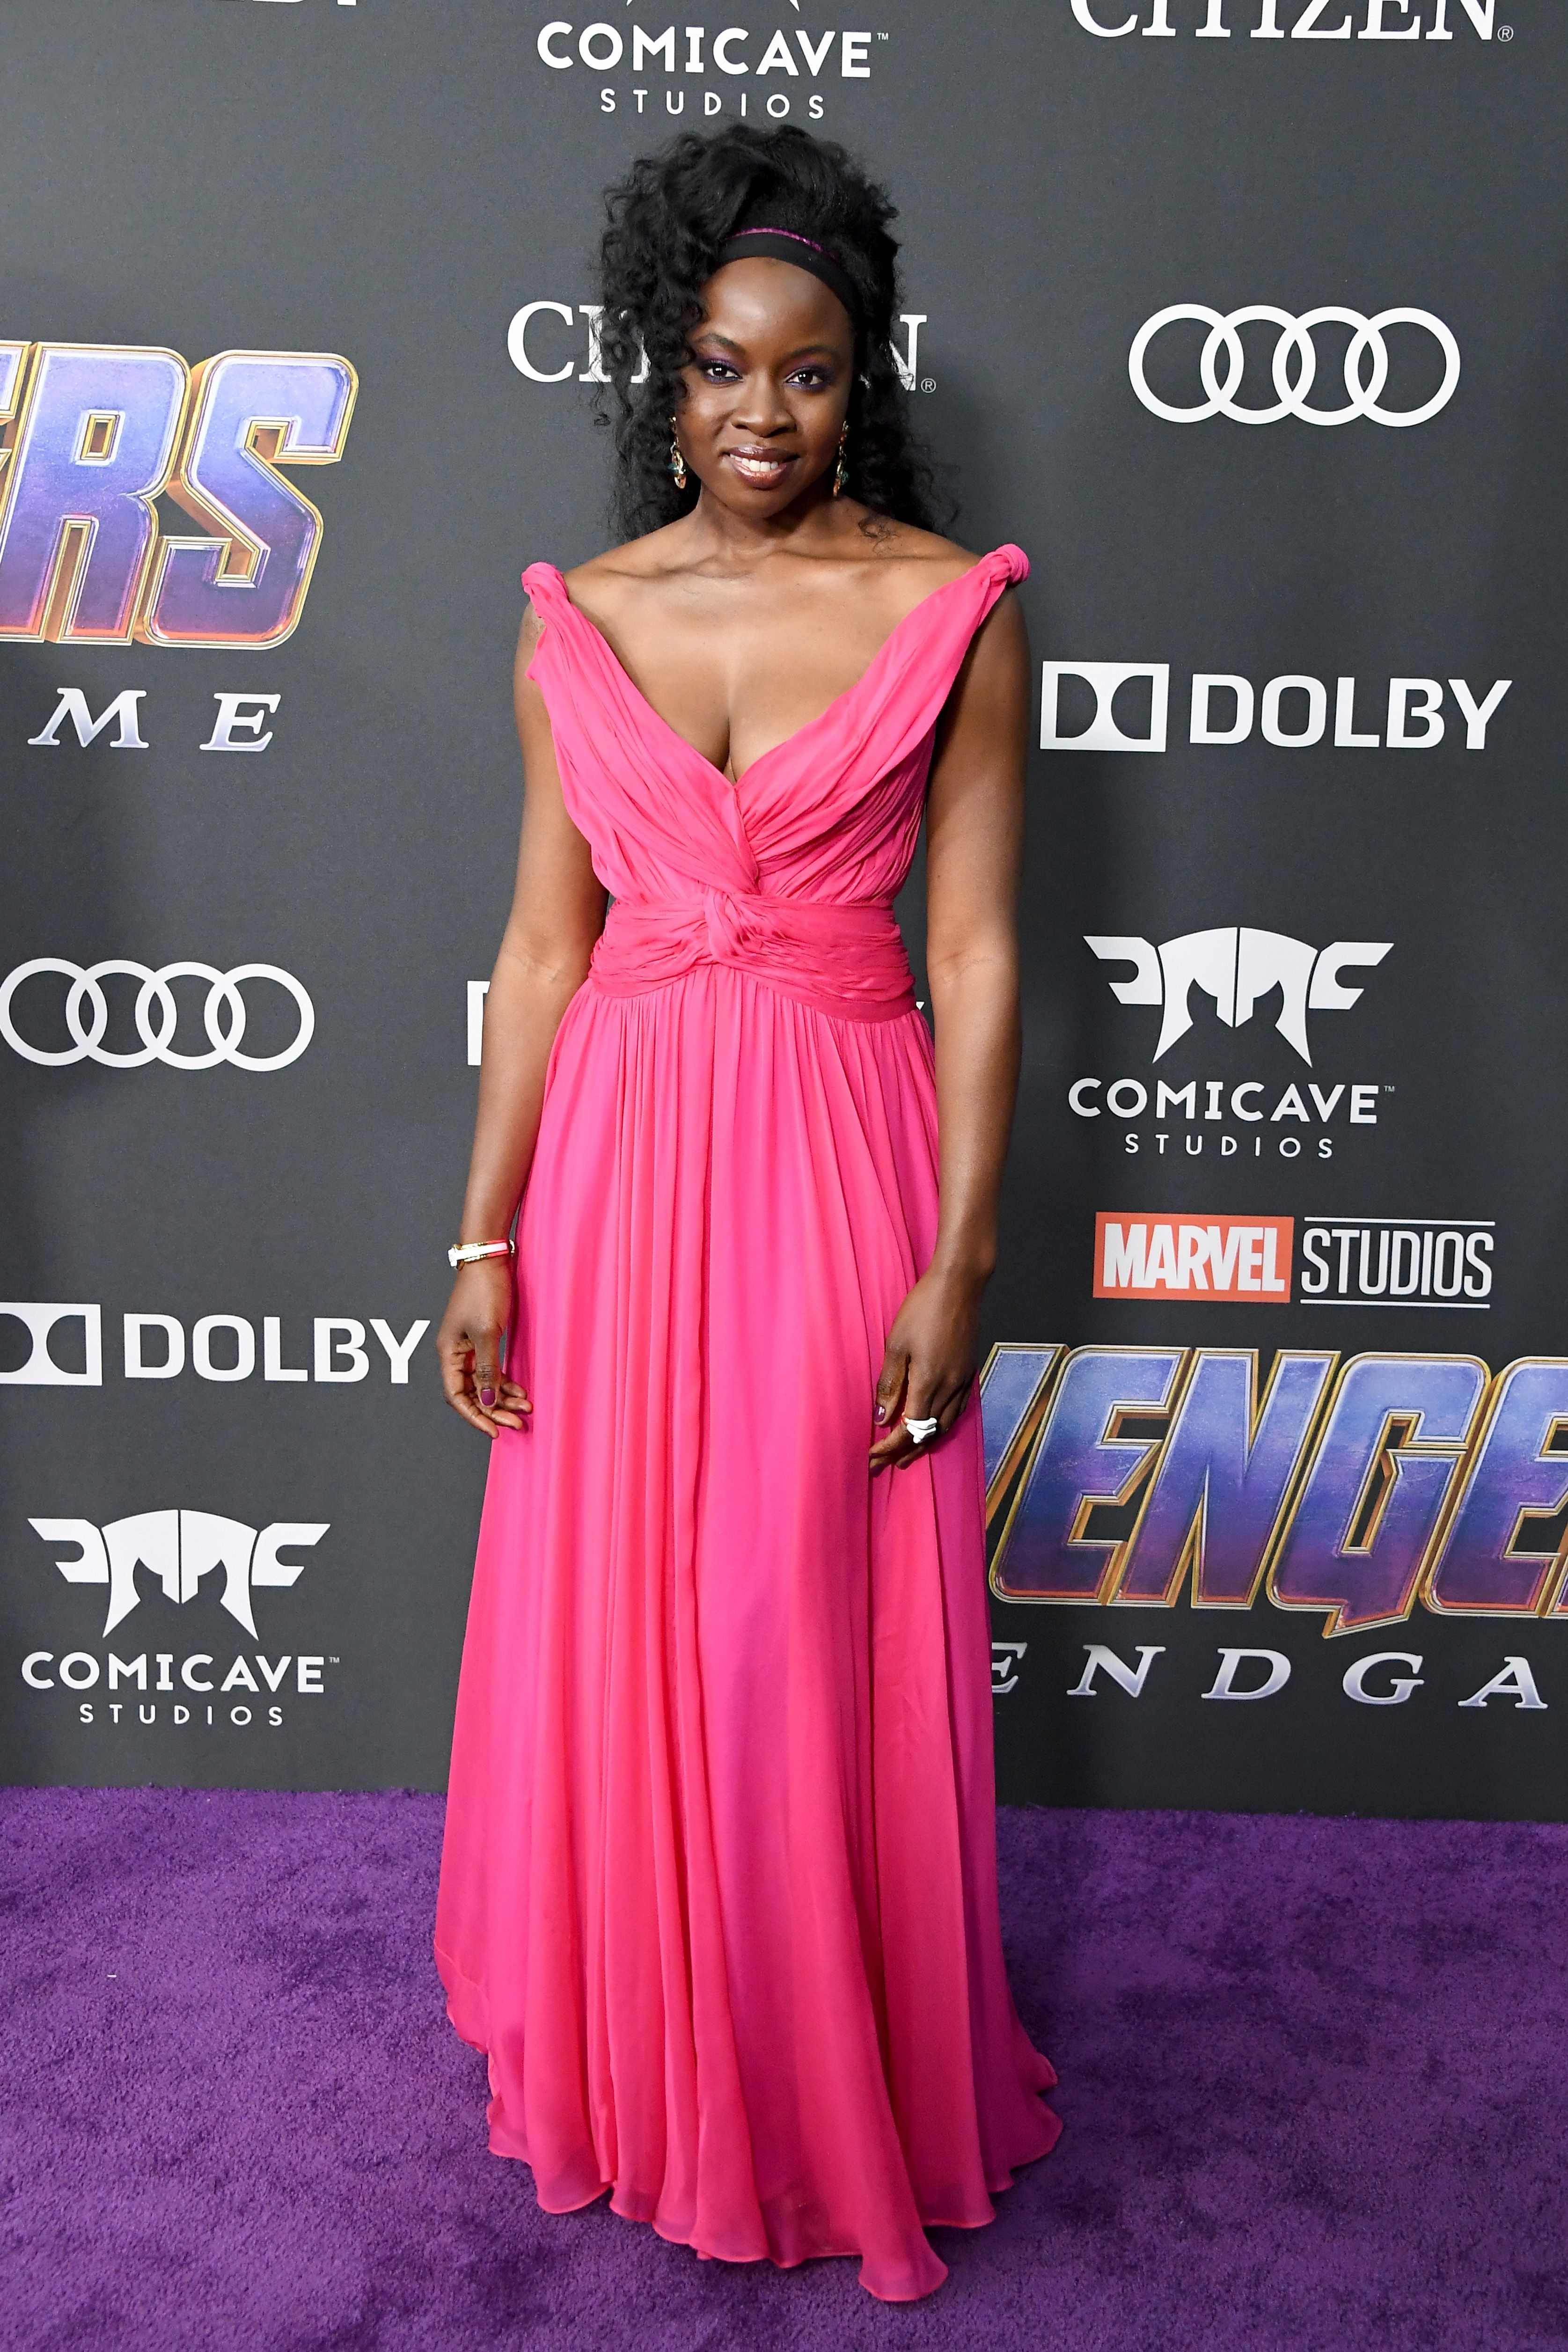 The Best Looks From the 'Avengers: Endgame' Los Angeles Premiere